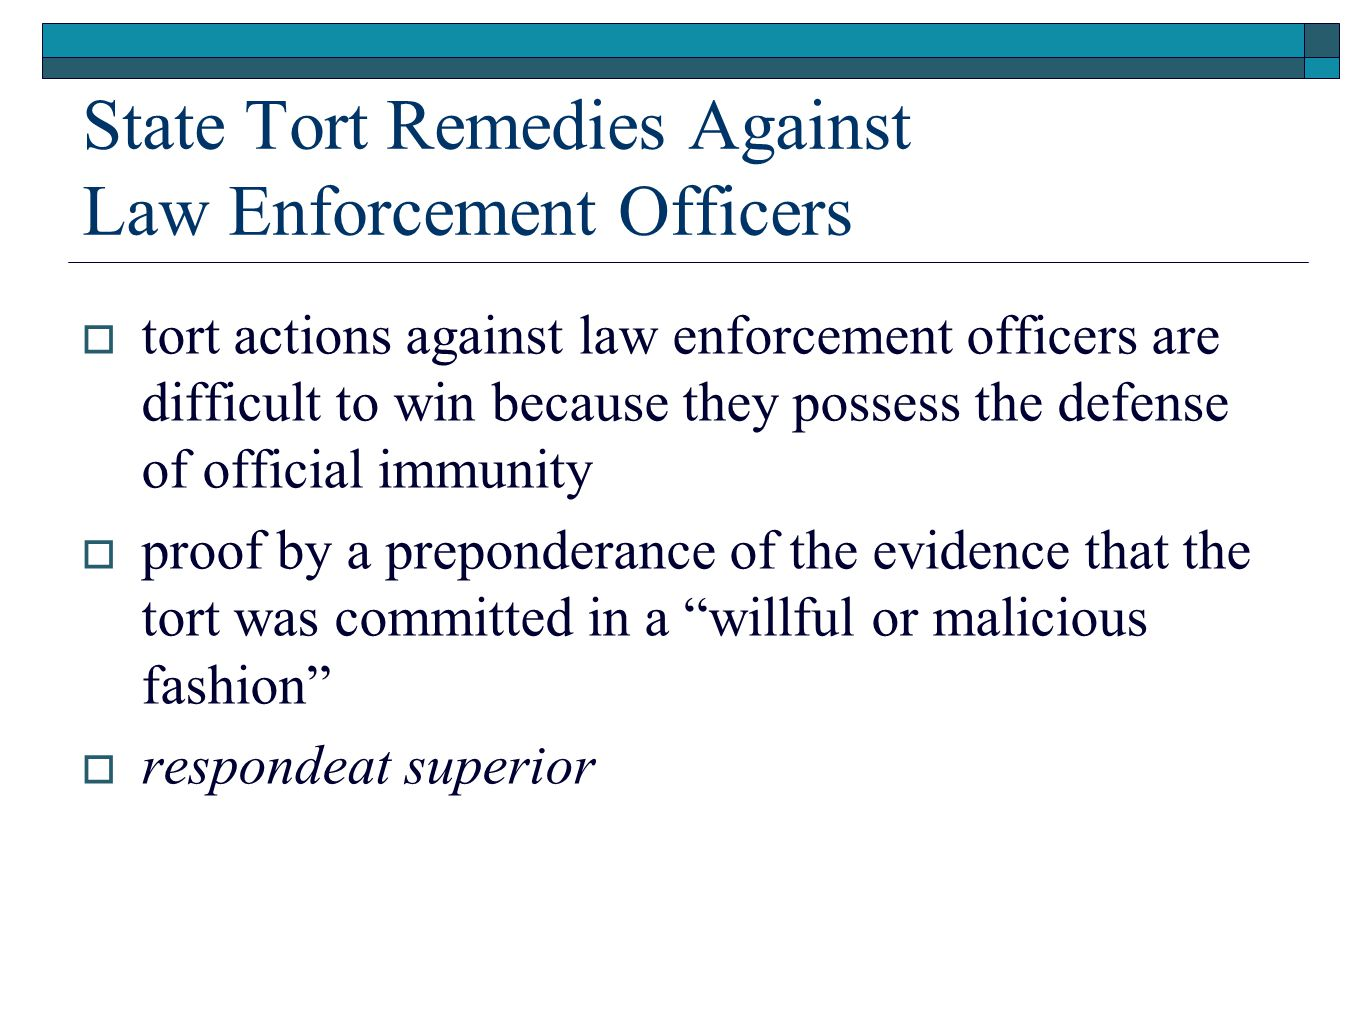 State Tort Remedies Against Law Enforcement Officers